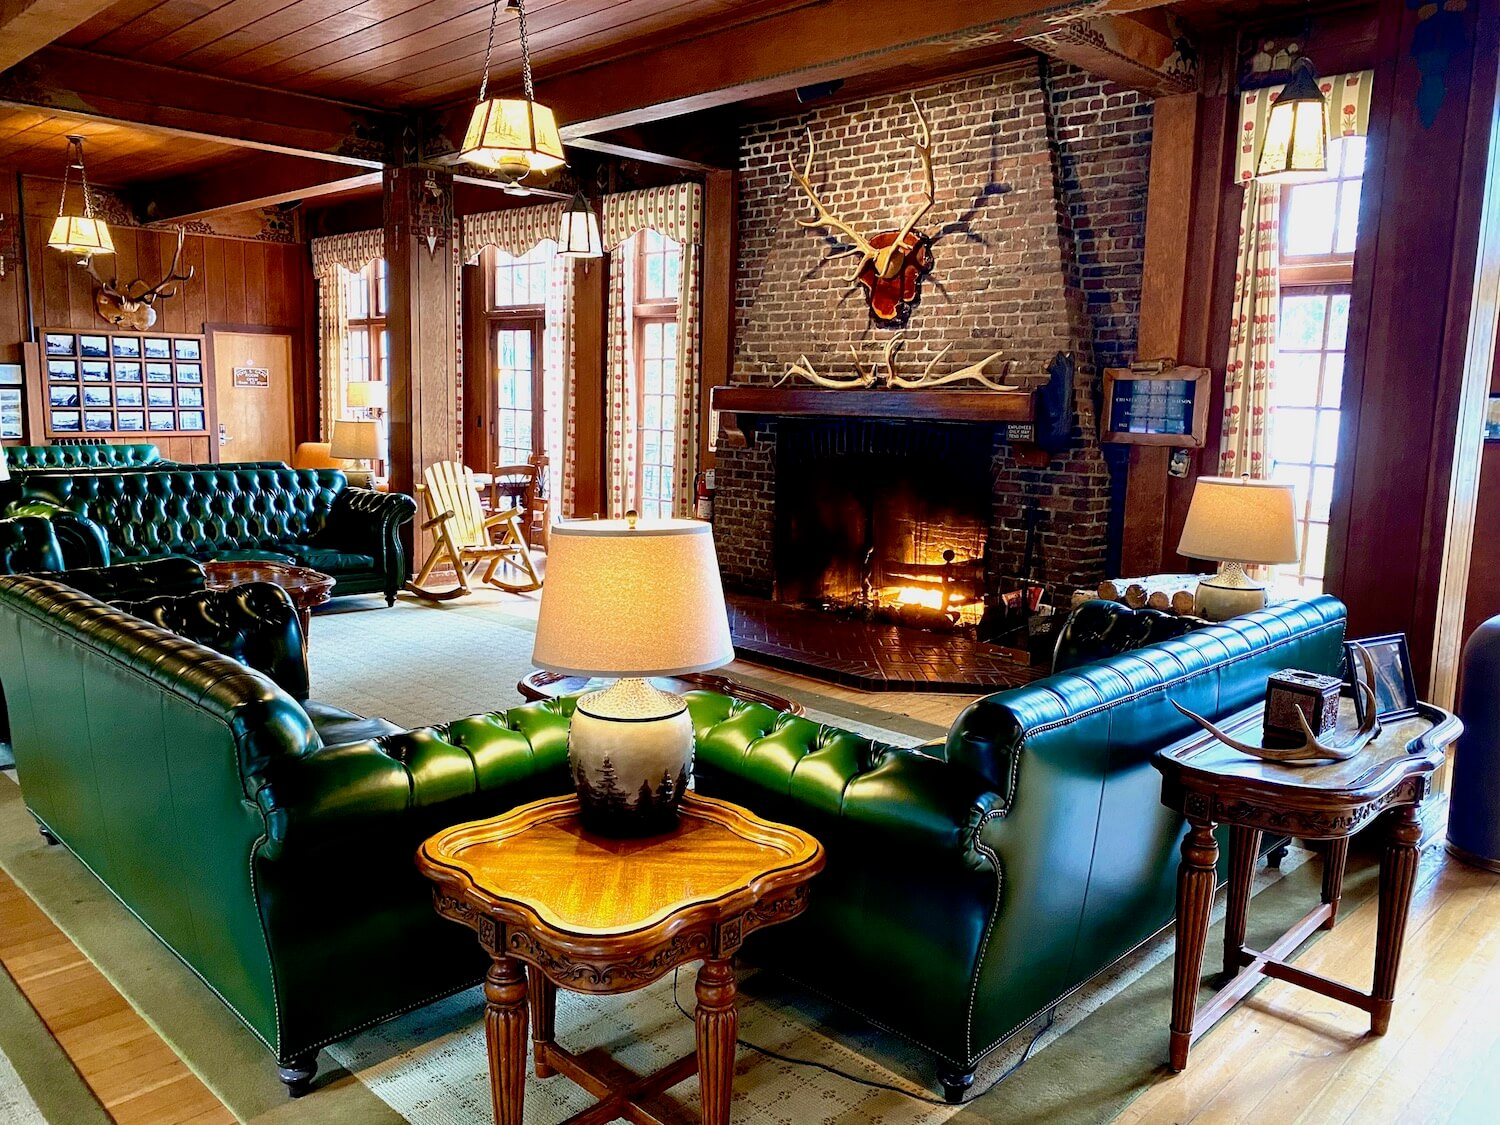 The grand lobby of the Lake Quinault Lodge has plush green leather couches welcoming guests to a roaring fire in a giant brick fireplace with Roosevelt Elk horns mounted on the mantle. Light flows through the floor to ceiling wall of windows.